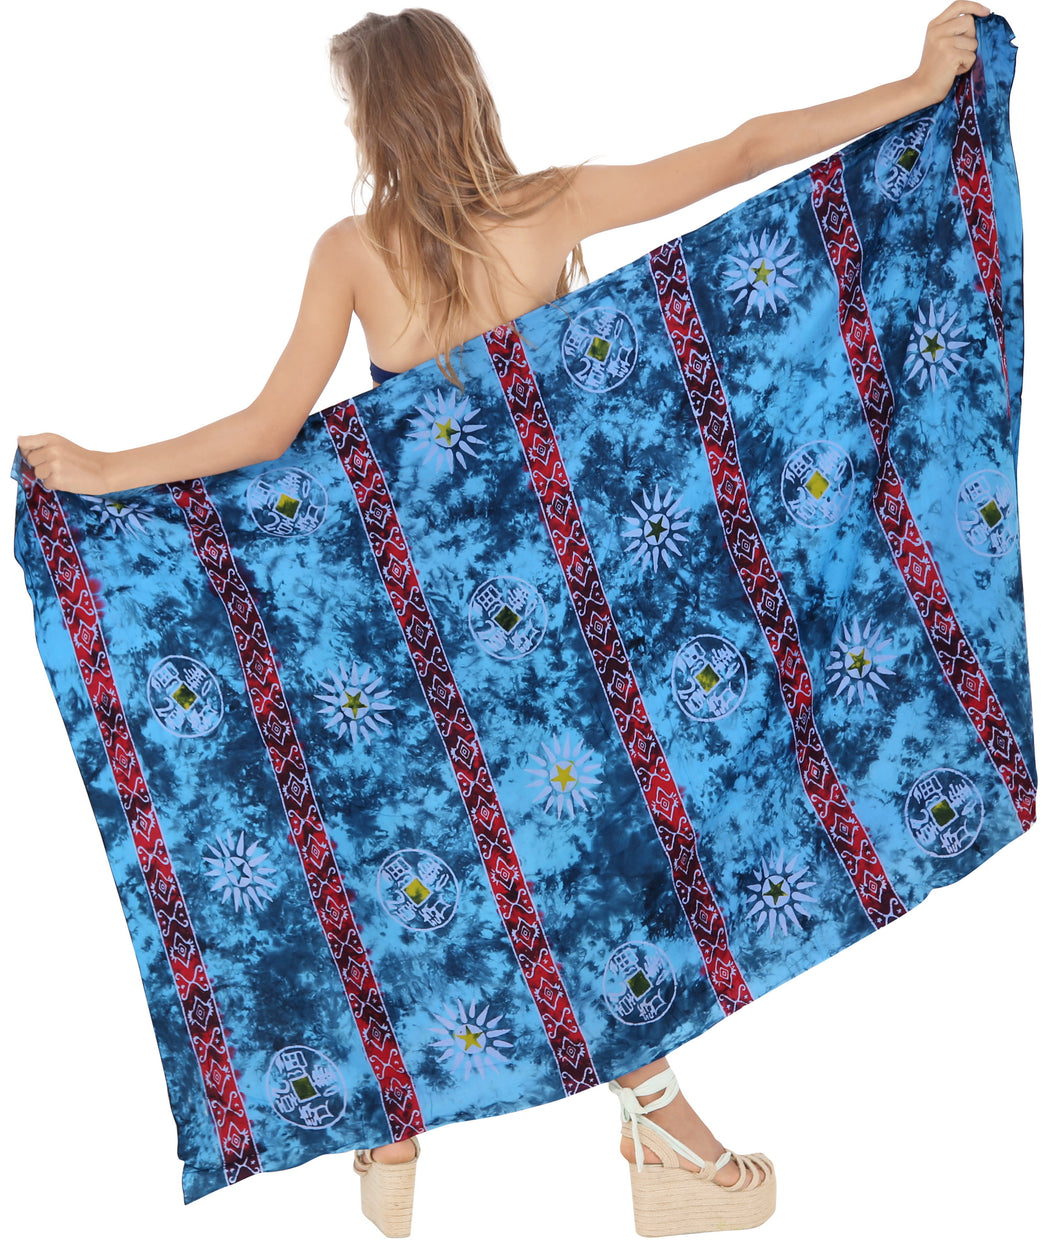 la-leela-rayon-towel-wrap-pareo-sarong-printed-78x43-royal-blue_4433